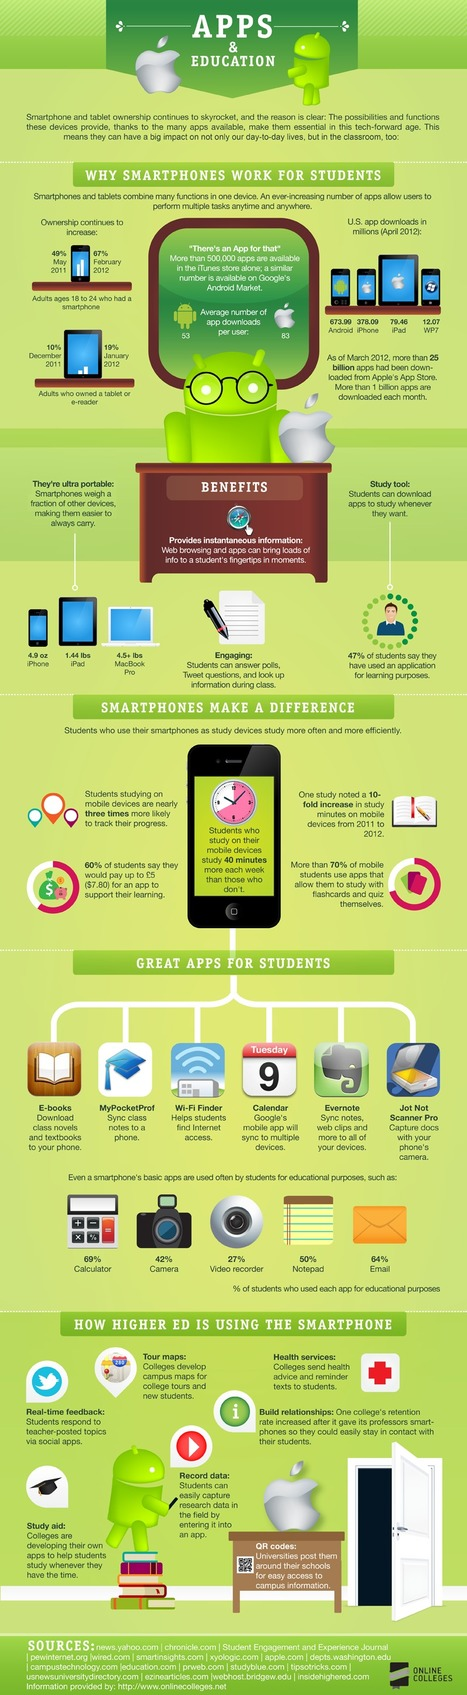 Infographic: Apps and Education | Infographic Info | Scoop.it